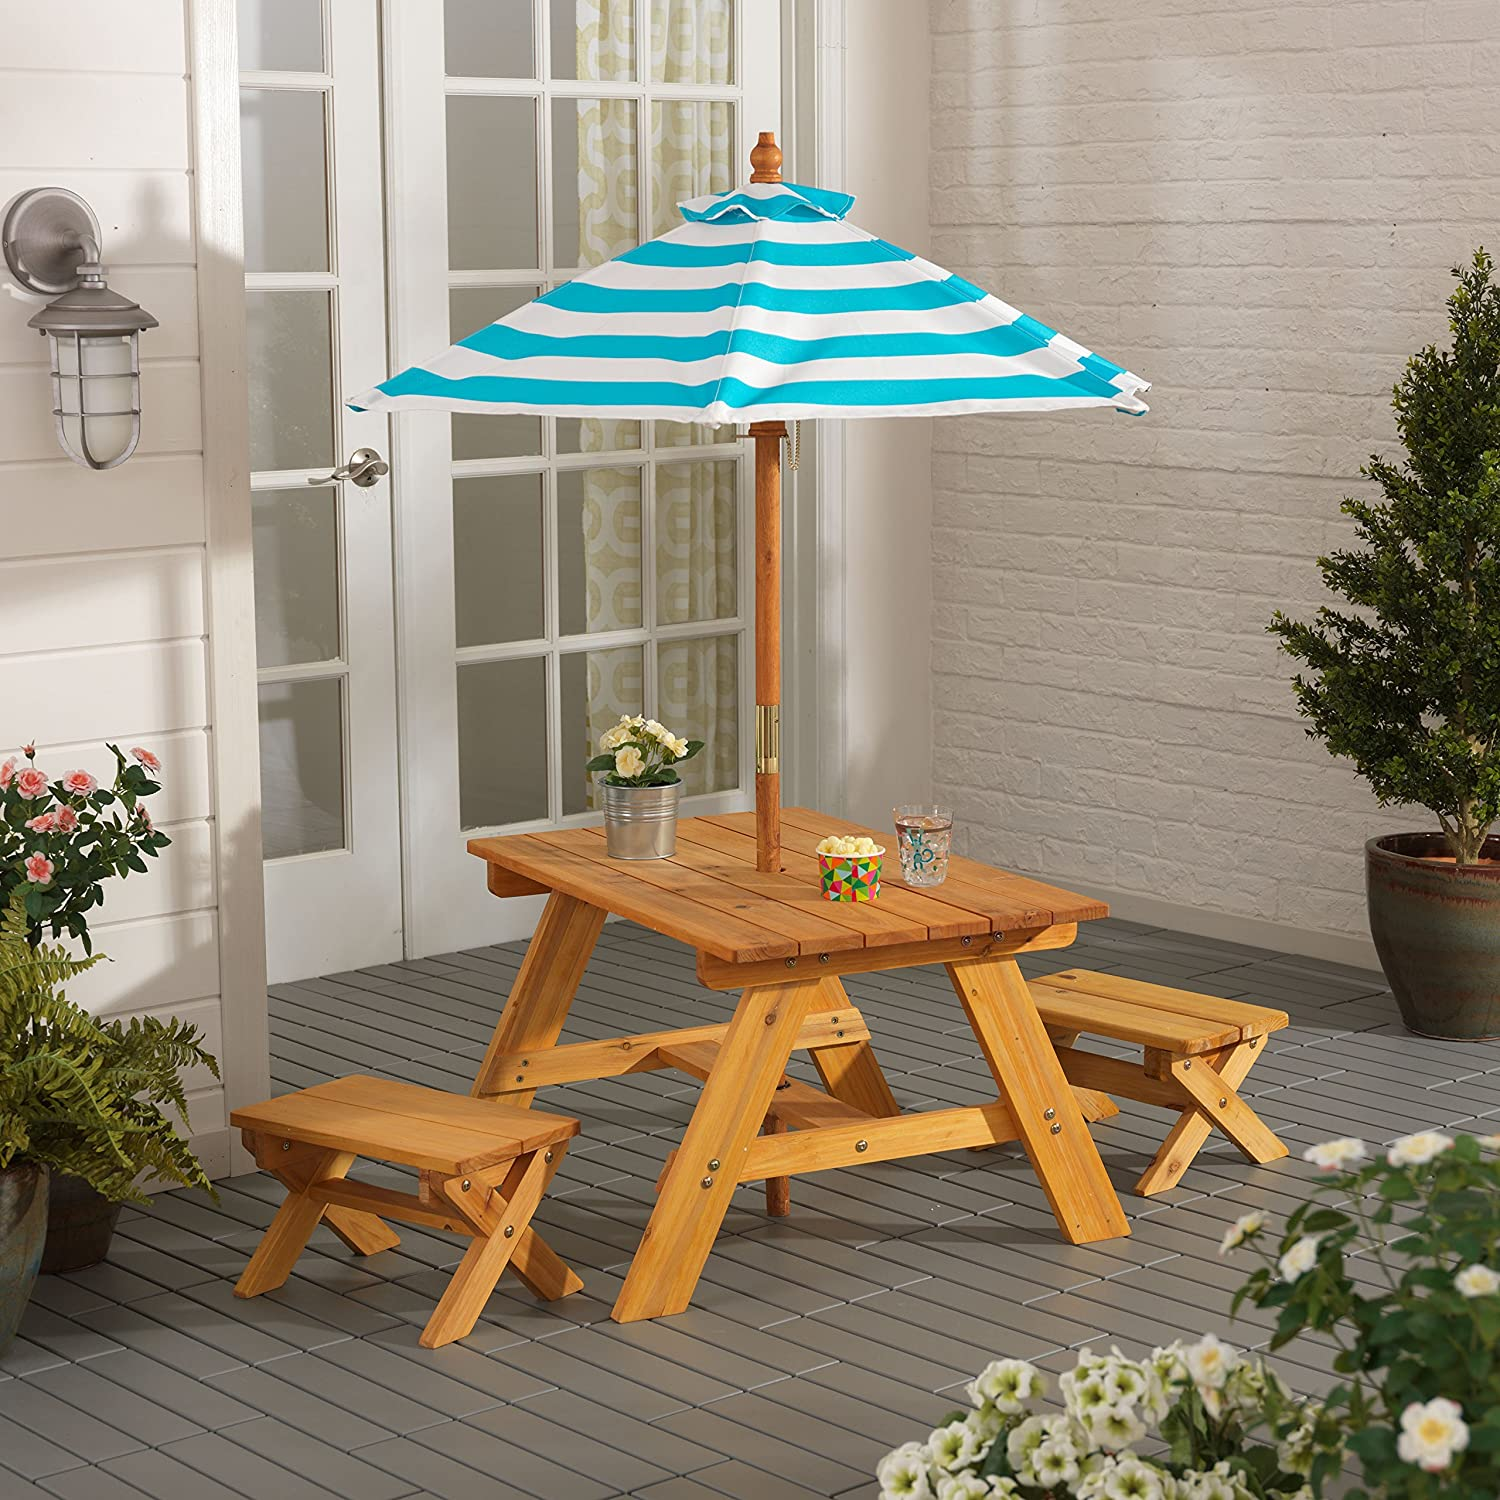 KidKraft Outdoor Table with Benches and Umbrella 00506